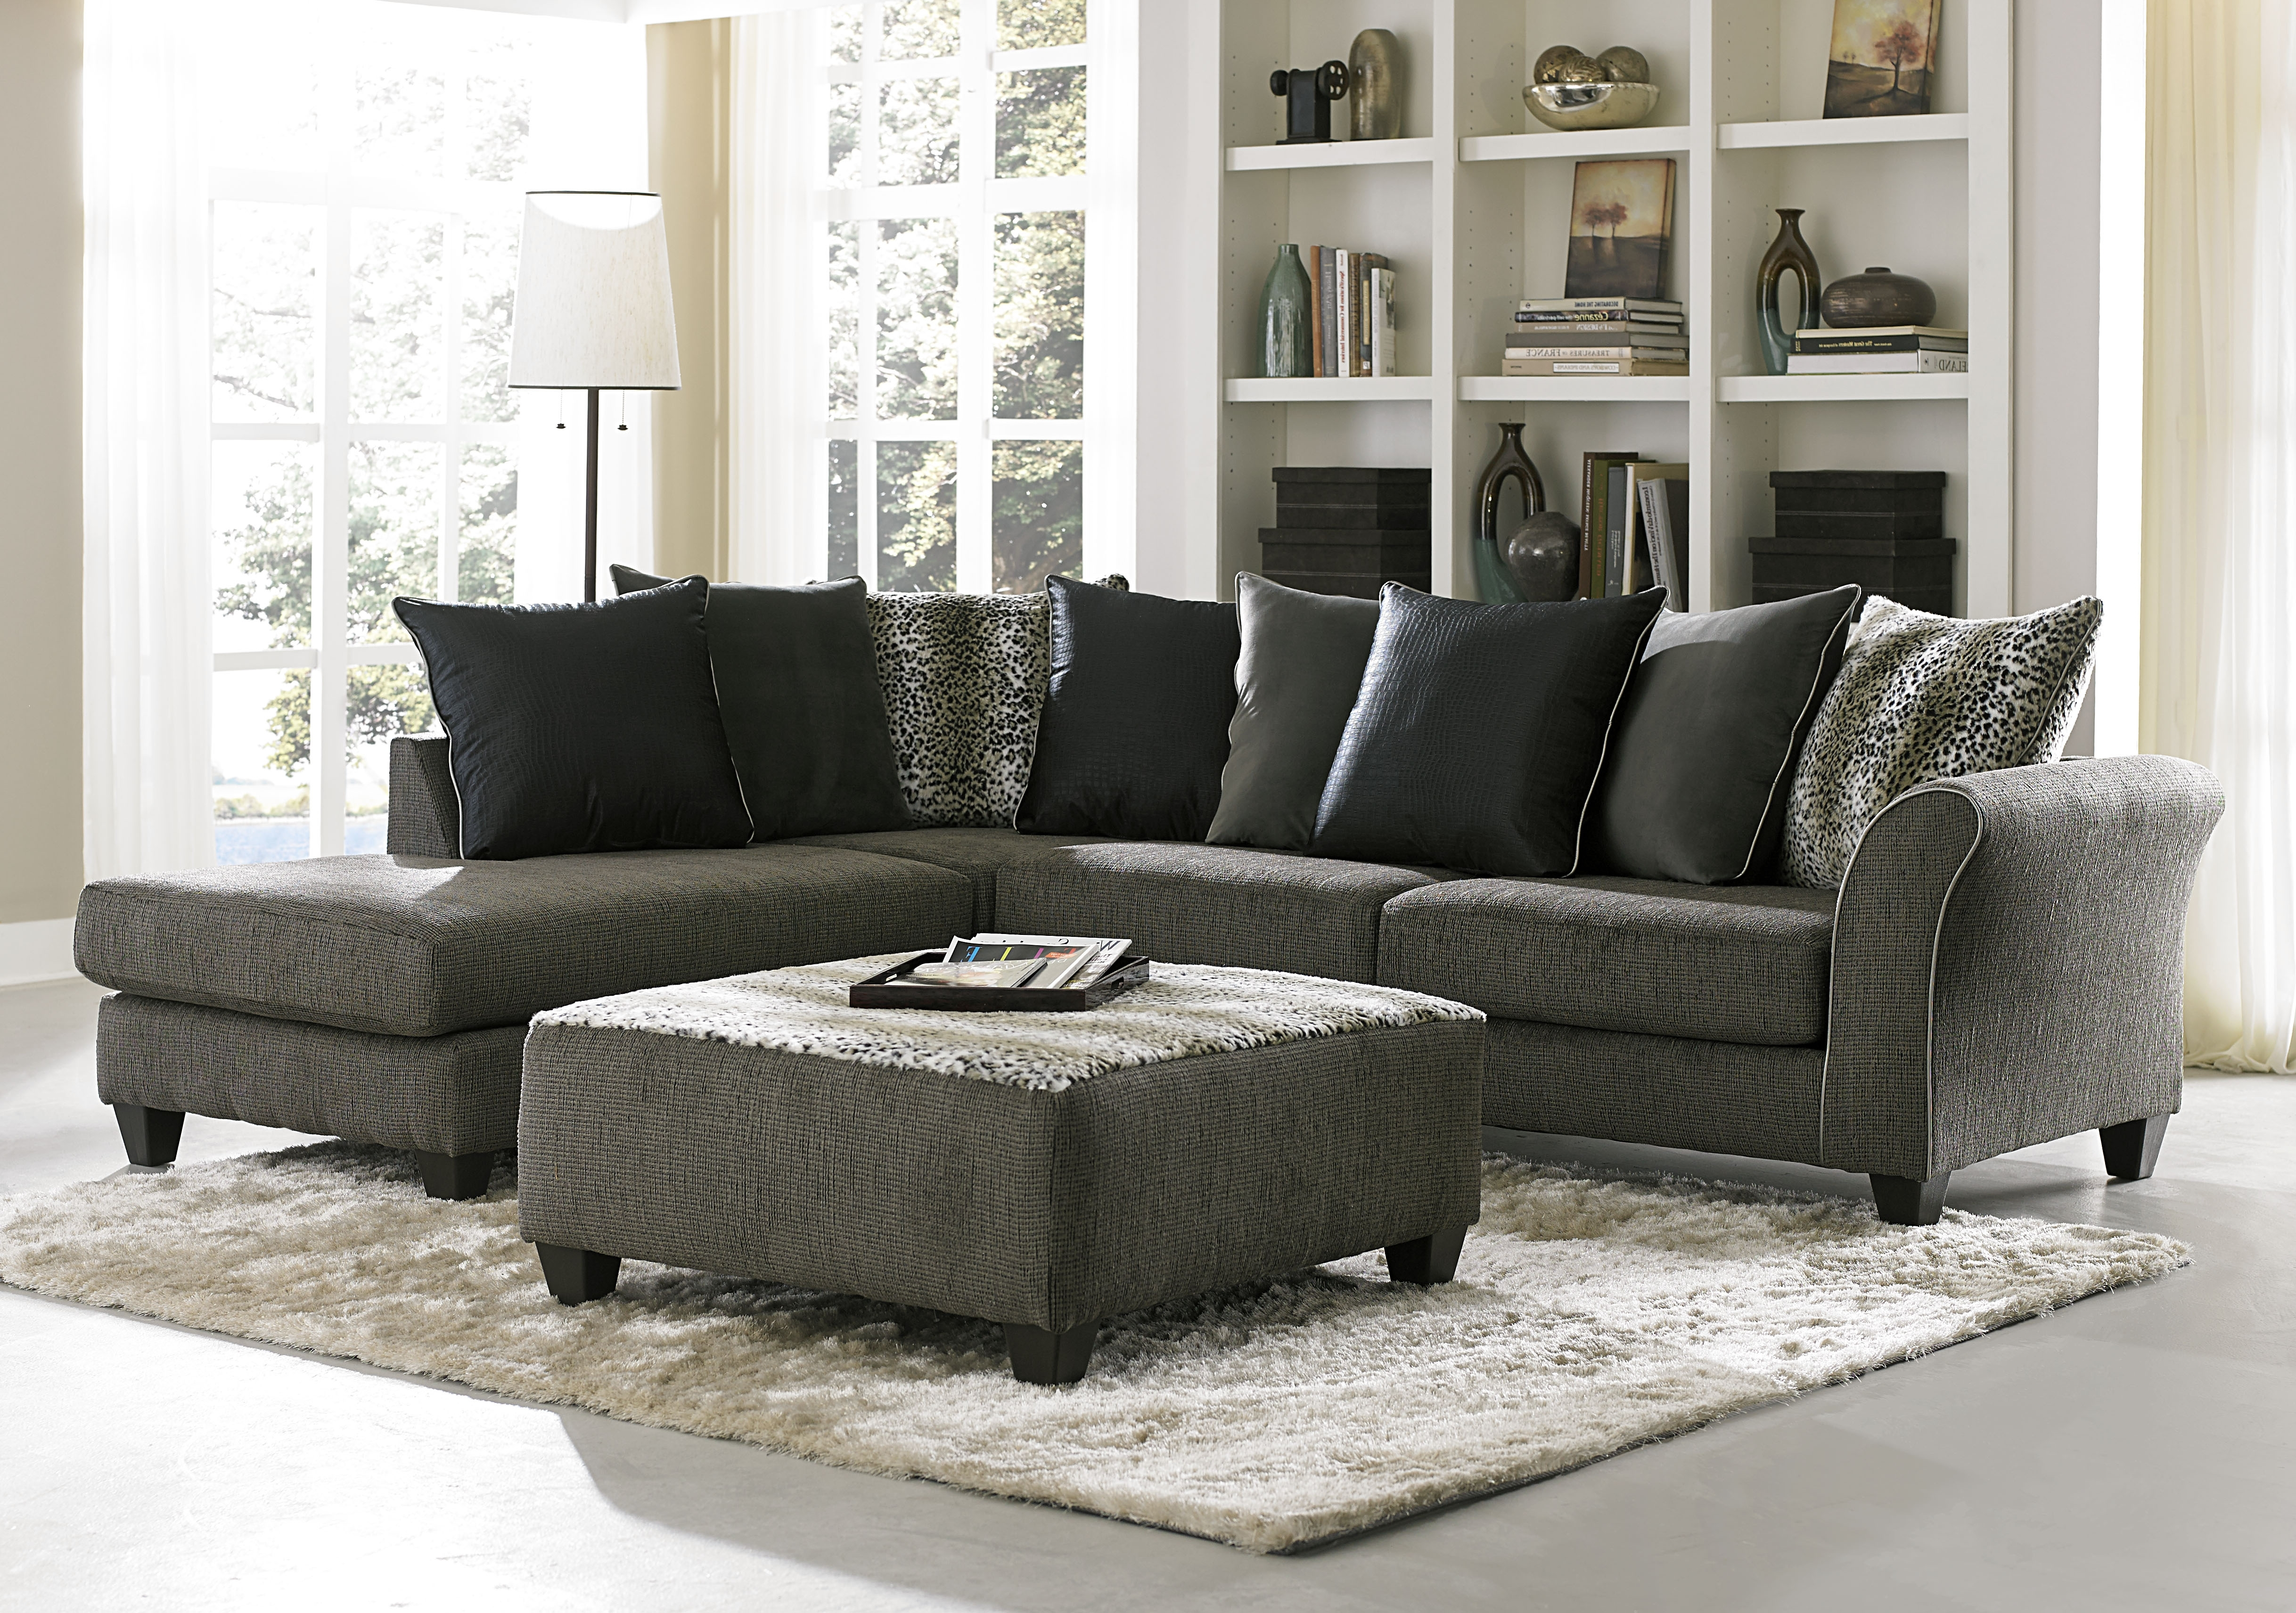 Memphis Tn Sectional Sofas Pertaining To Most Recently Released Furniture: American Freight Sectionals For Luxury Living Room (View 9 of 20)